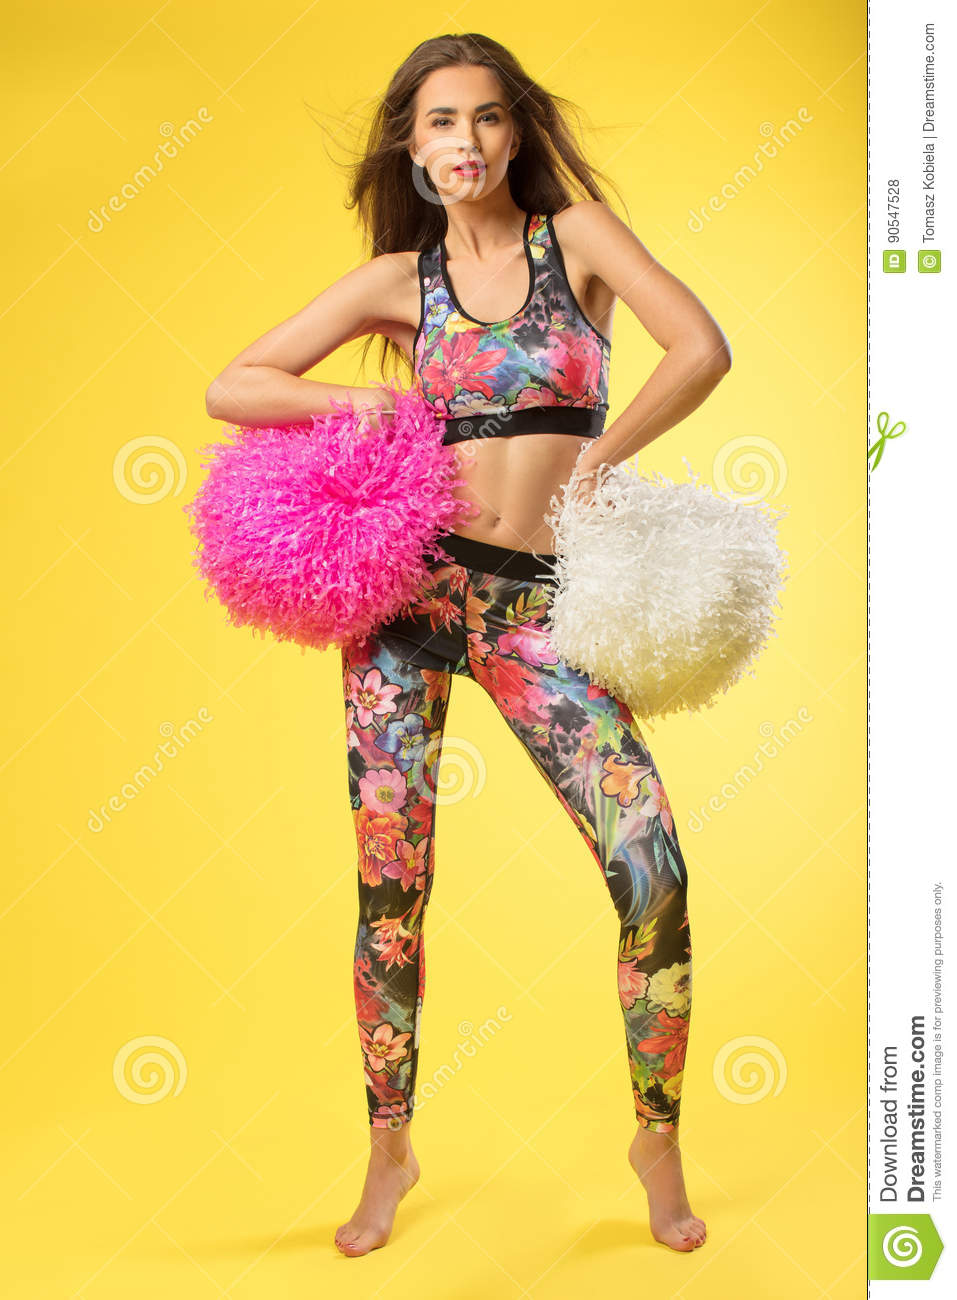 Fitness women on the yellow background.